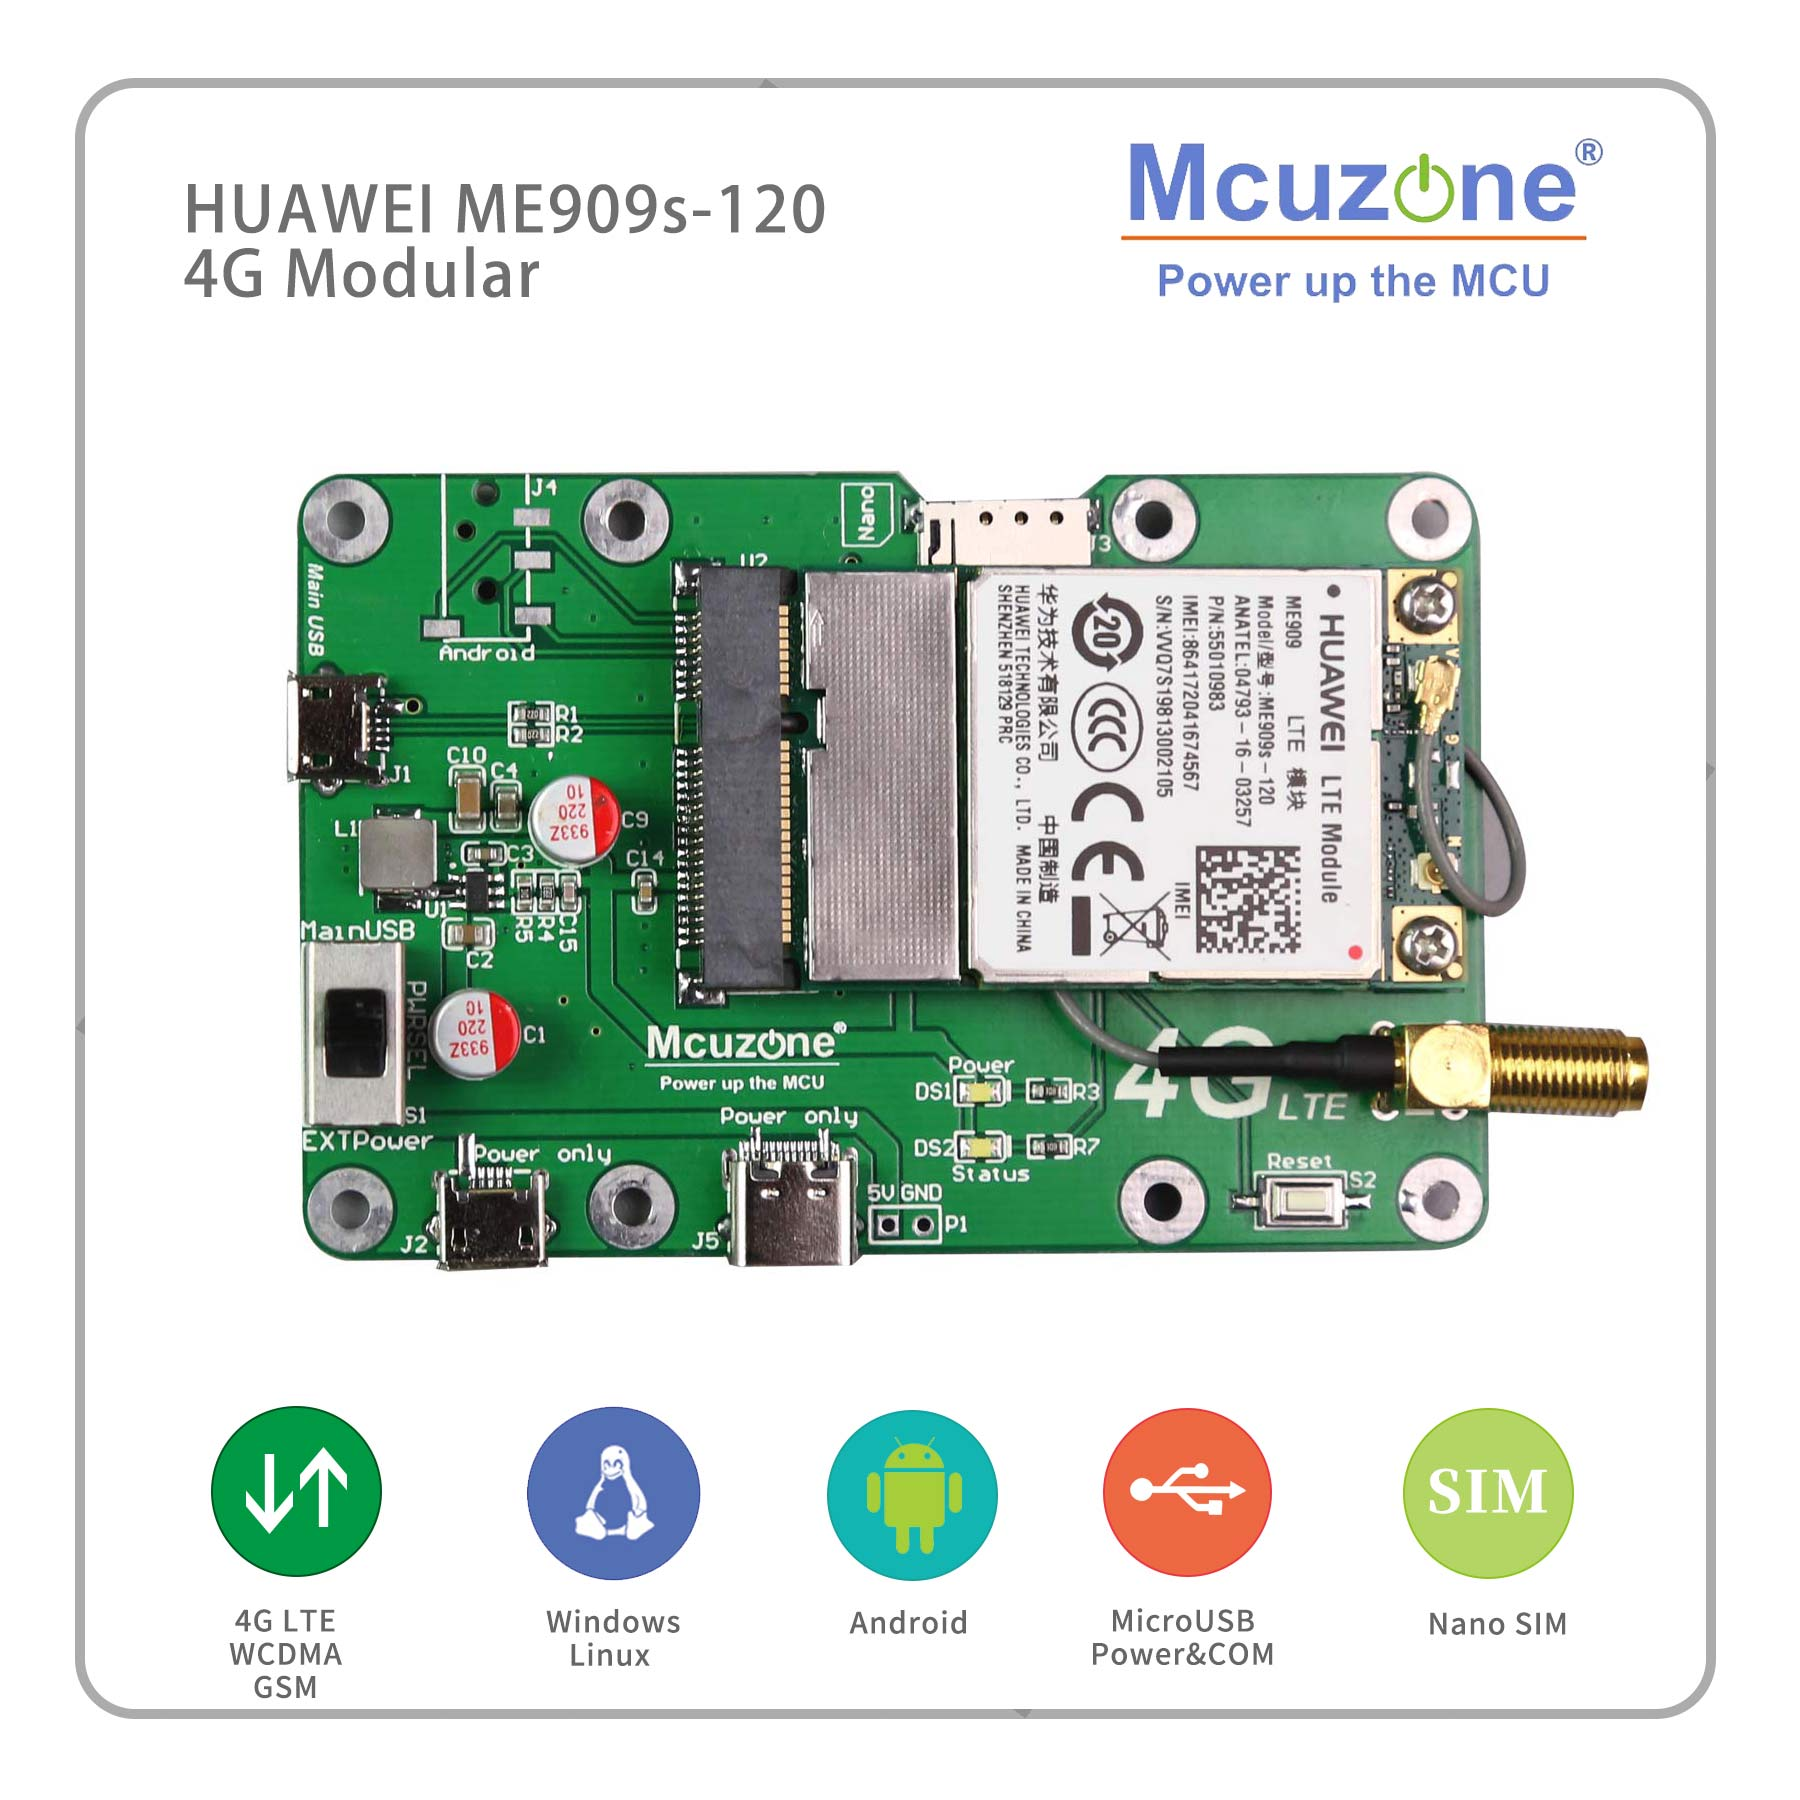 Huawei ME909s-120/821a USB High Performance 4G LTE Module For Global Carriers, Suitable For Raspberry Pi  Win10, Ubuntu